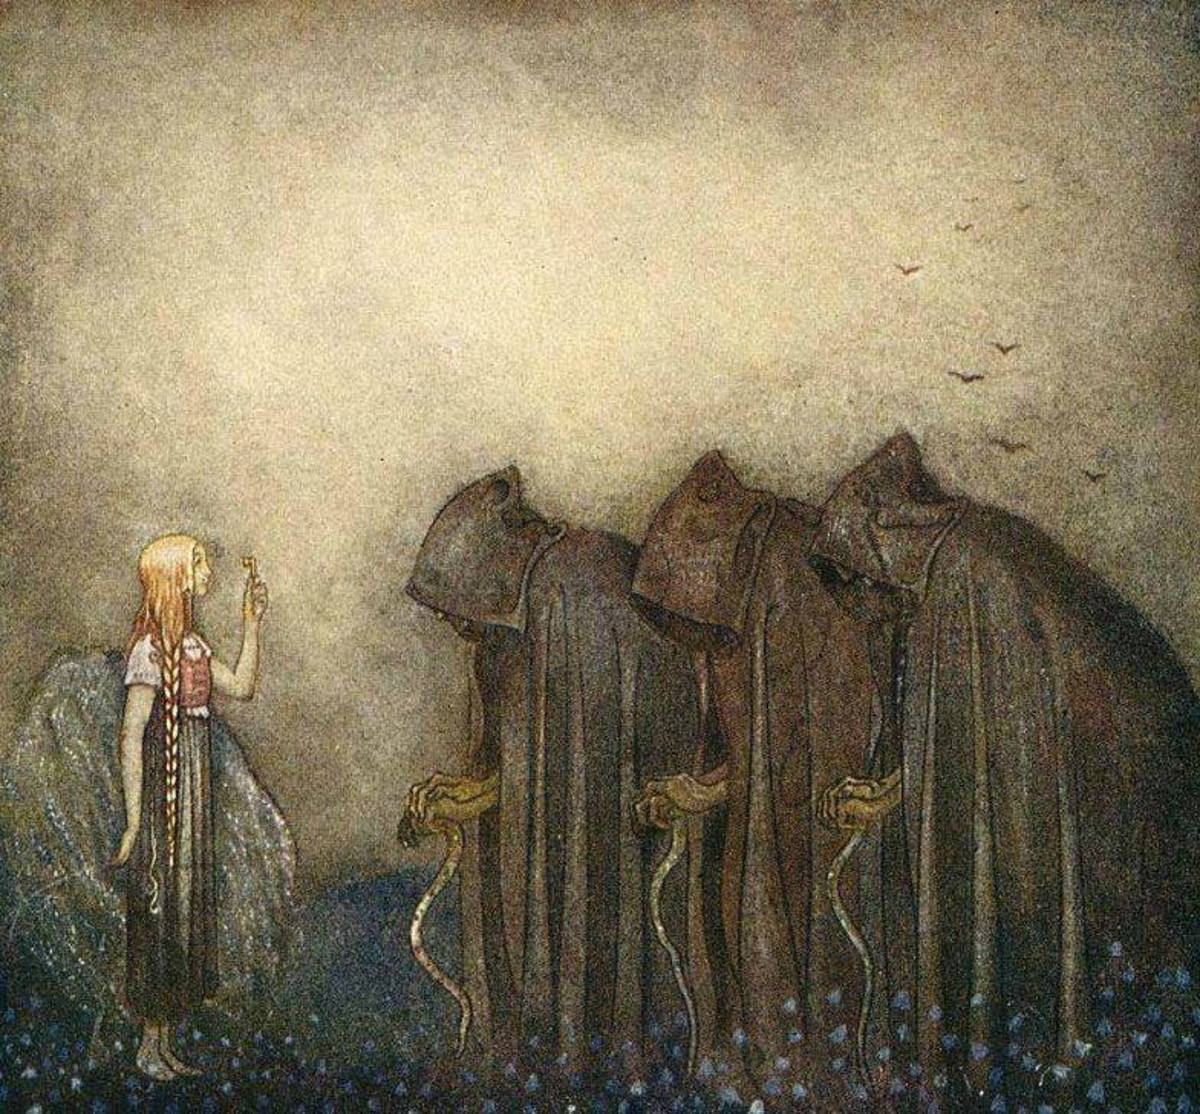 This illustration by John Bauer reminds me of the Cailleach due to her association as a goddes with many incarnations. She was mainly known as a hag, but had periods of youth.